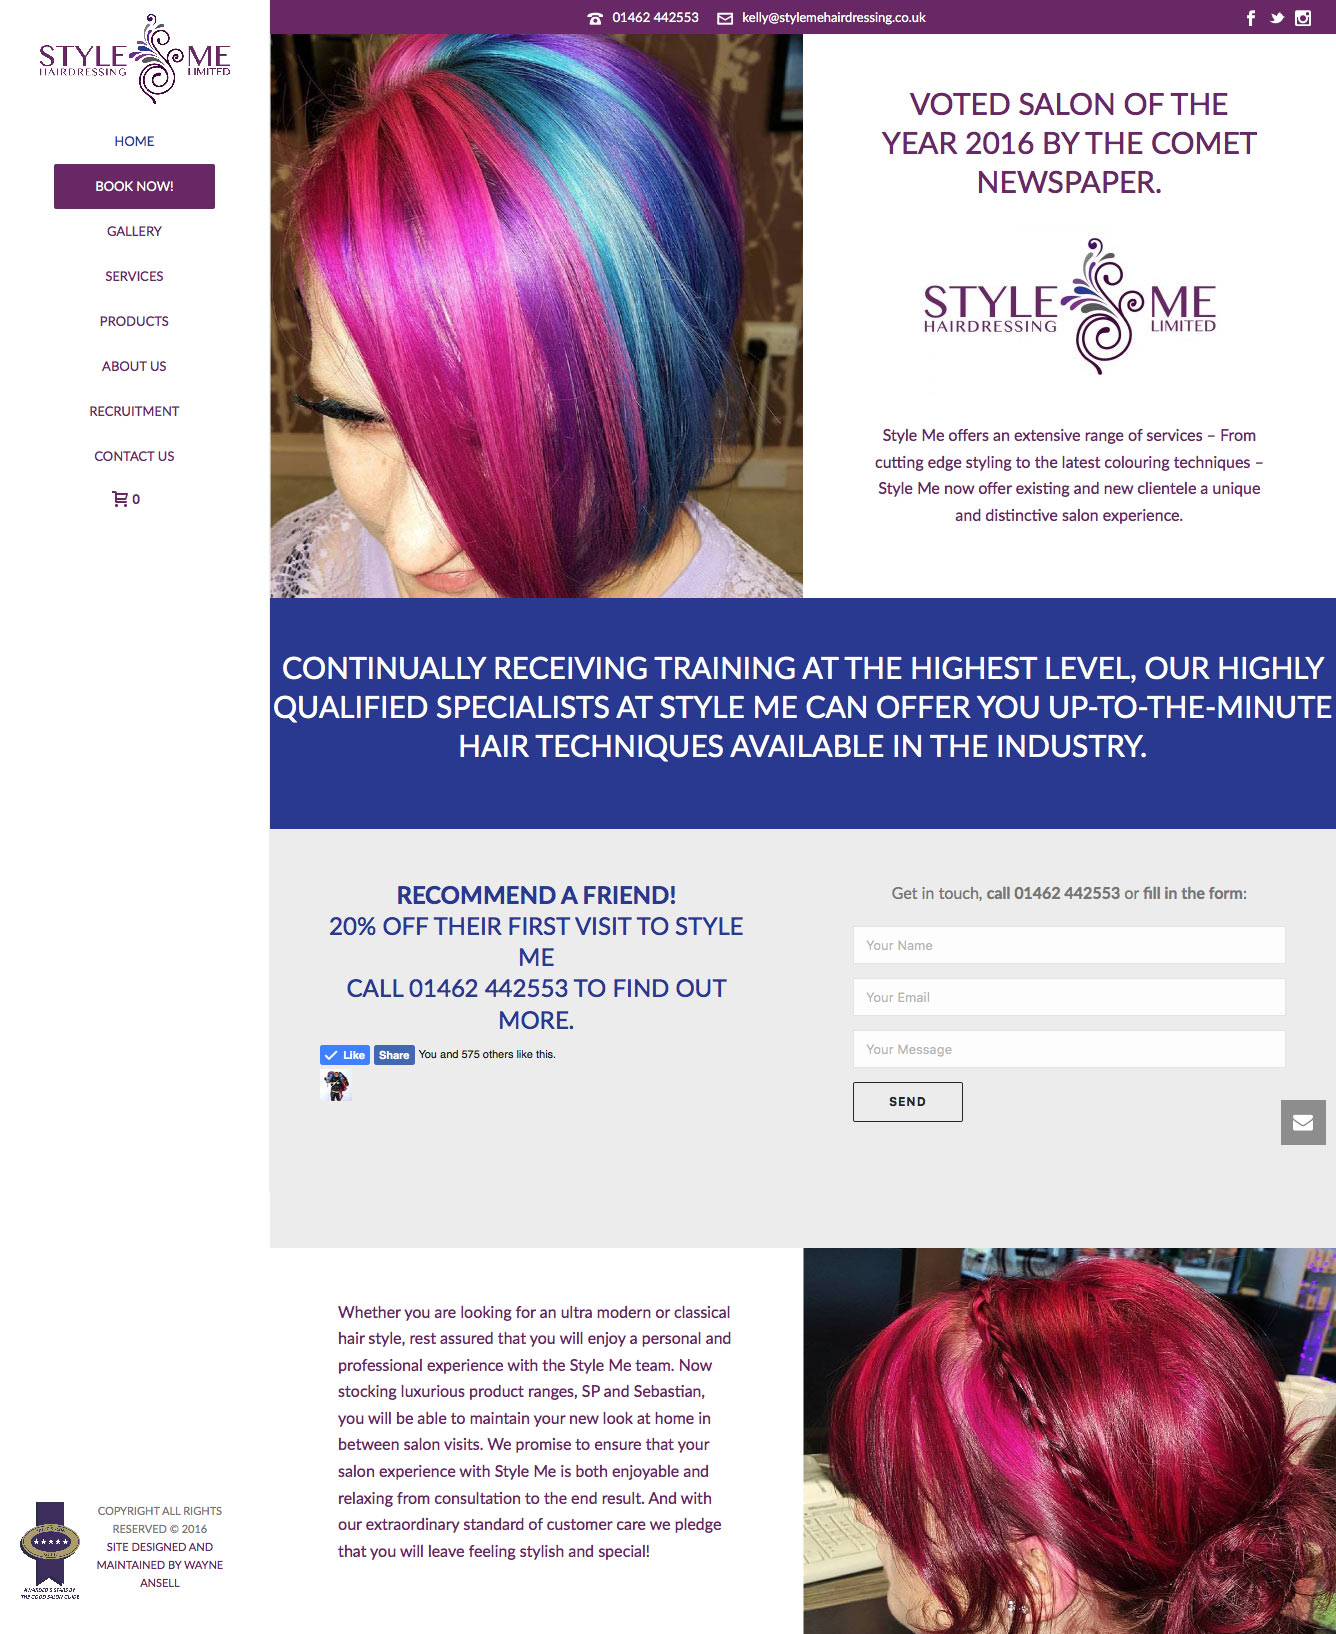 Style_Me_Hairdressing_–_Voted_Salon_of_the_Year_2016_by_the_comet_newspaper_-_2016-06-29_09.24.45